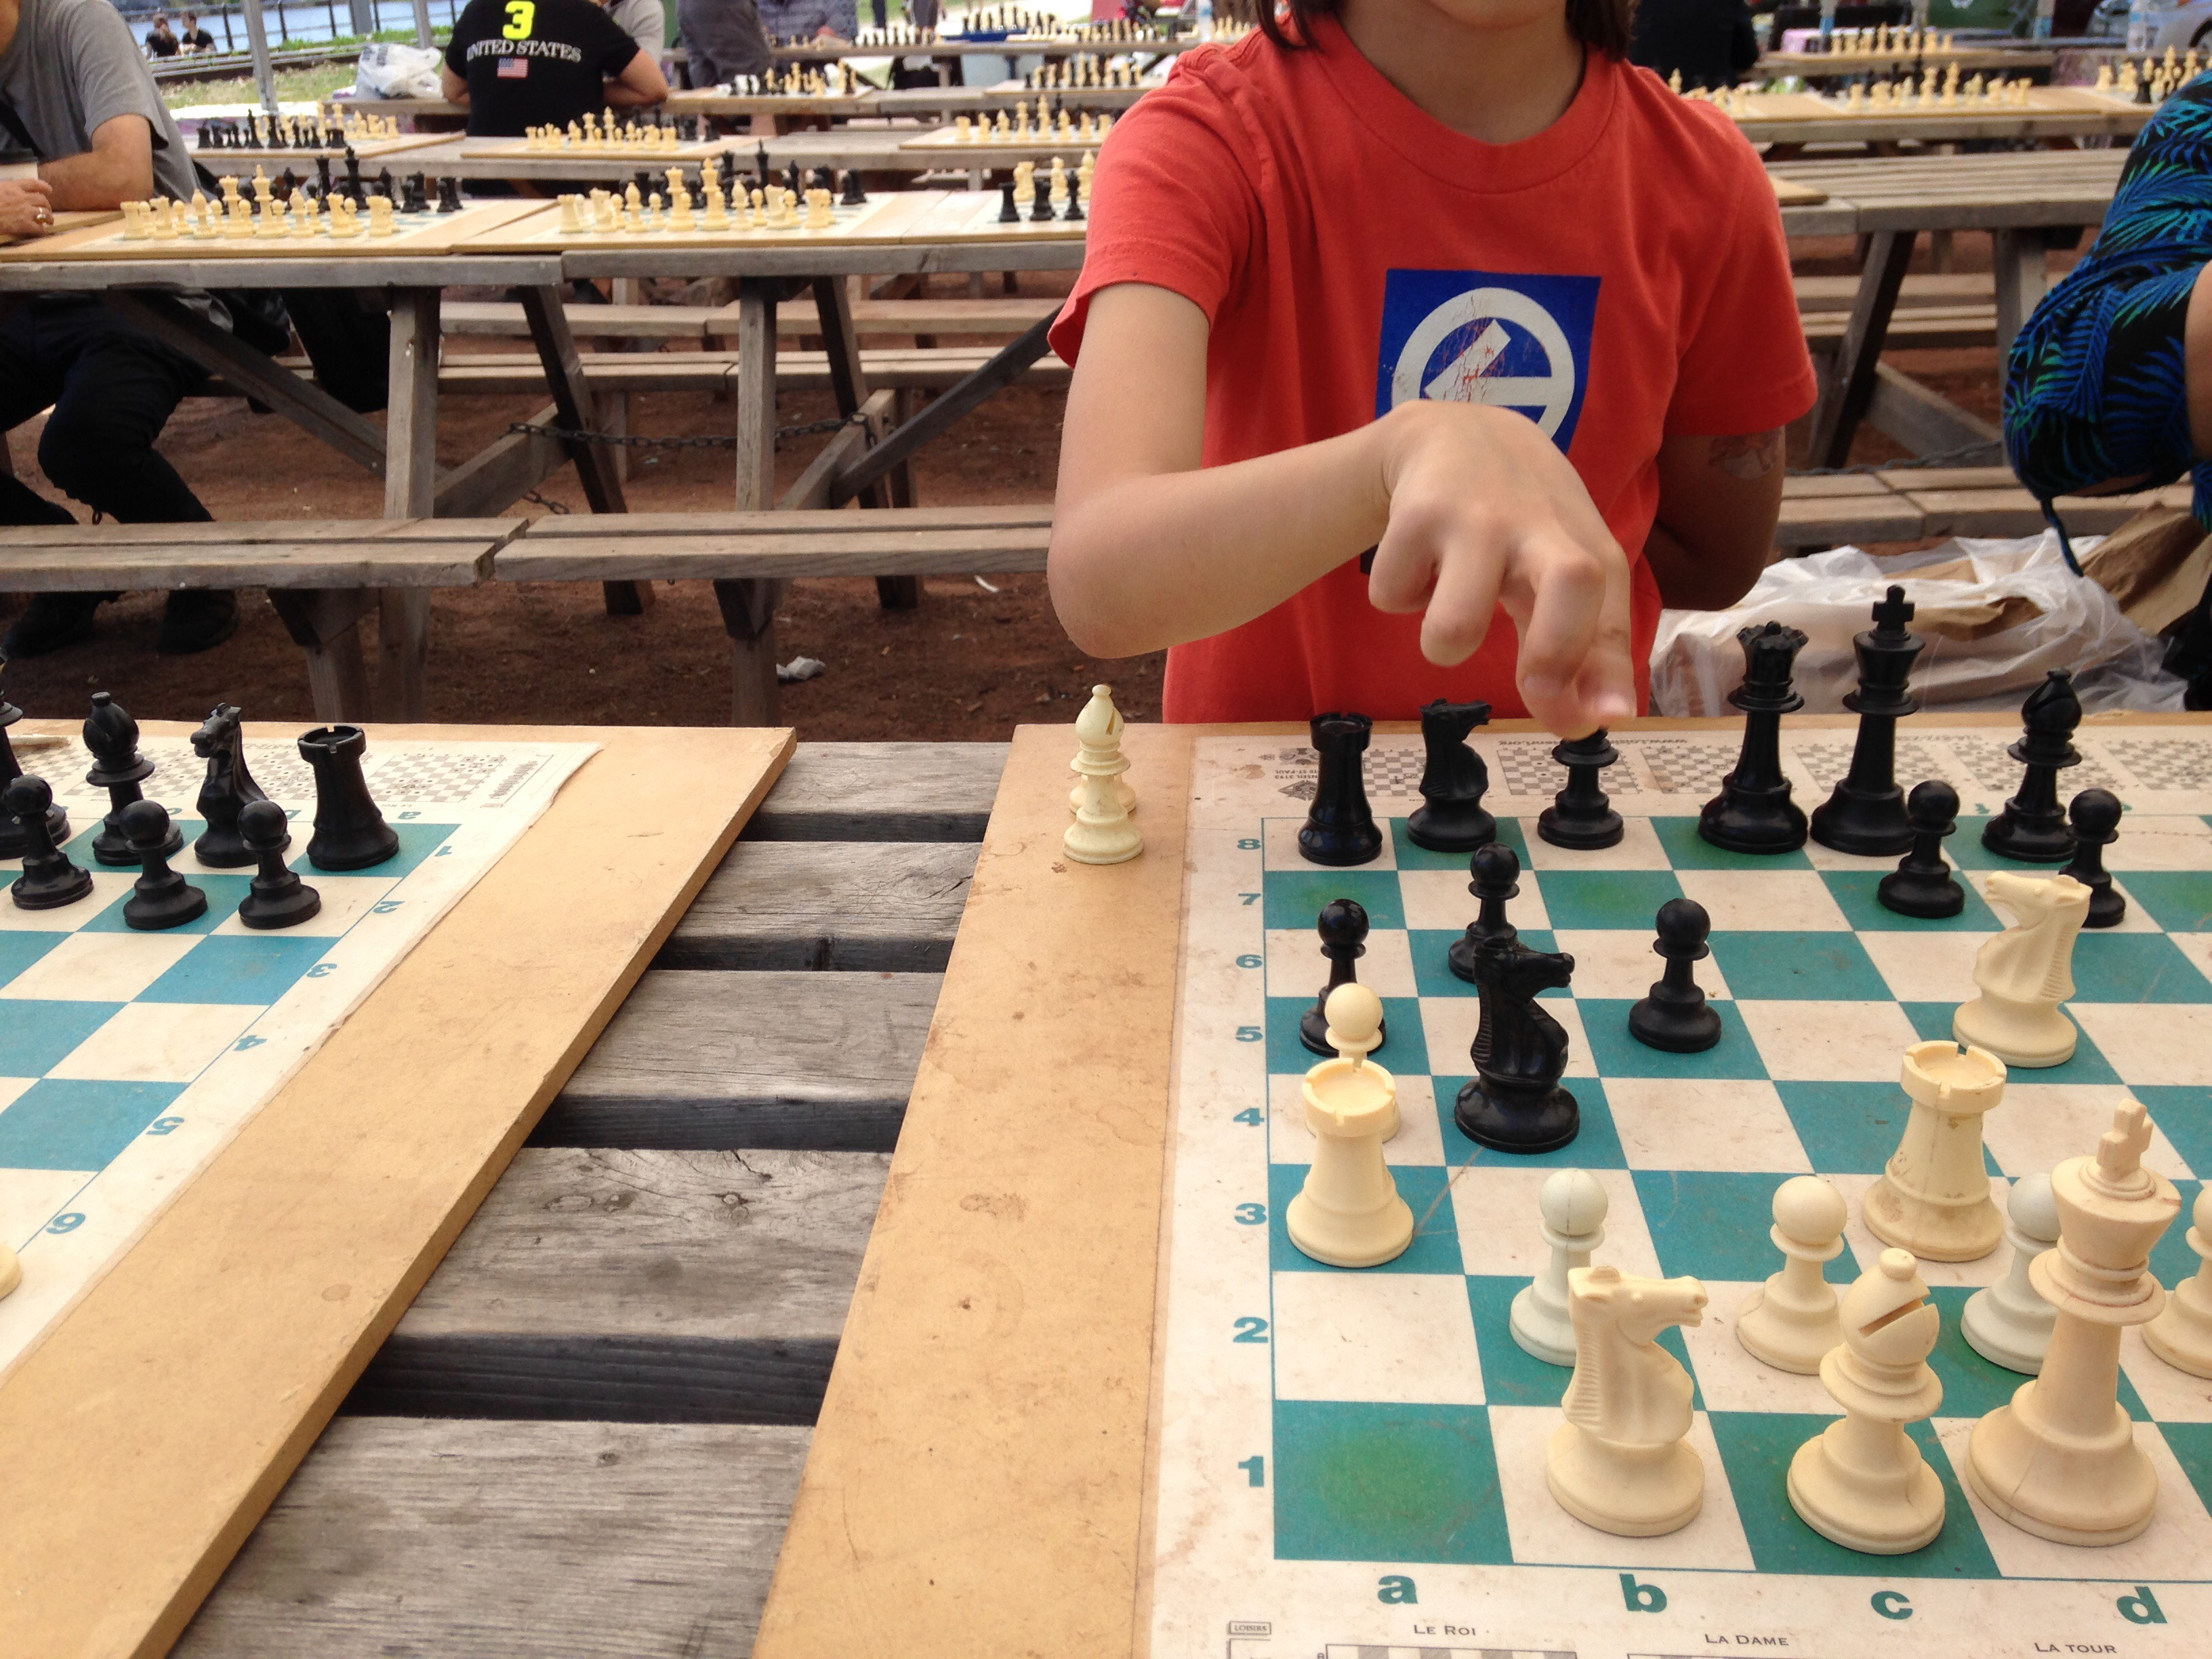 Playing Chess at Atwater Market